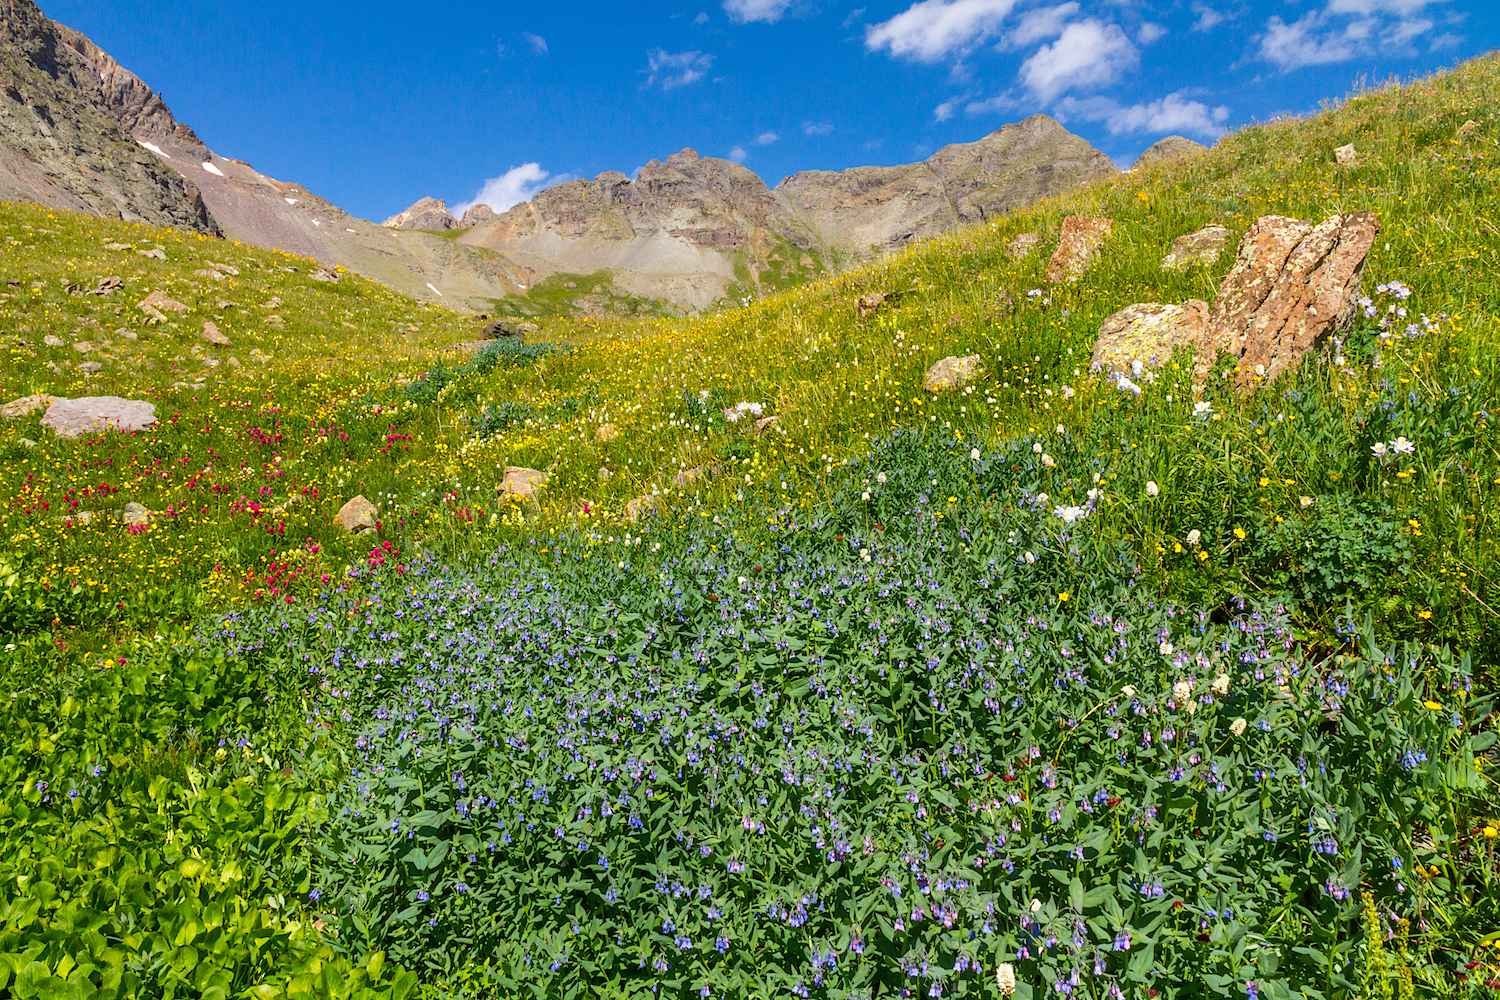 Clear Lake Wildflowers, Image # 3876